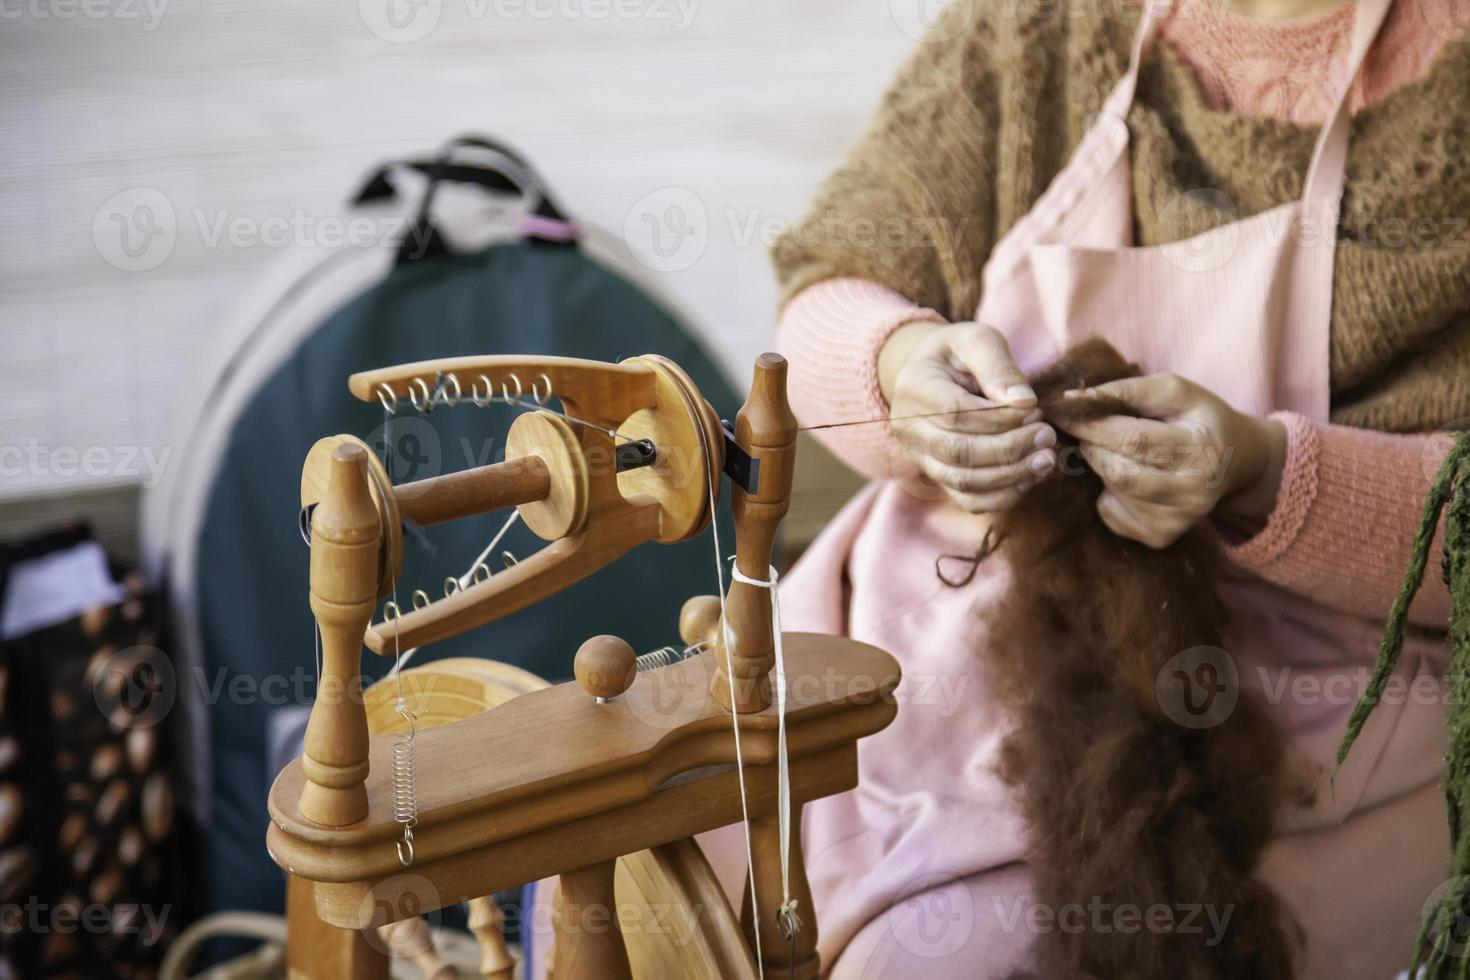 Spinning with a wooden spinning wheel photo